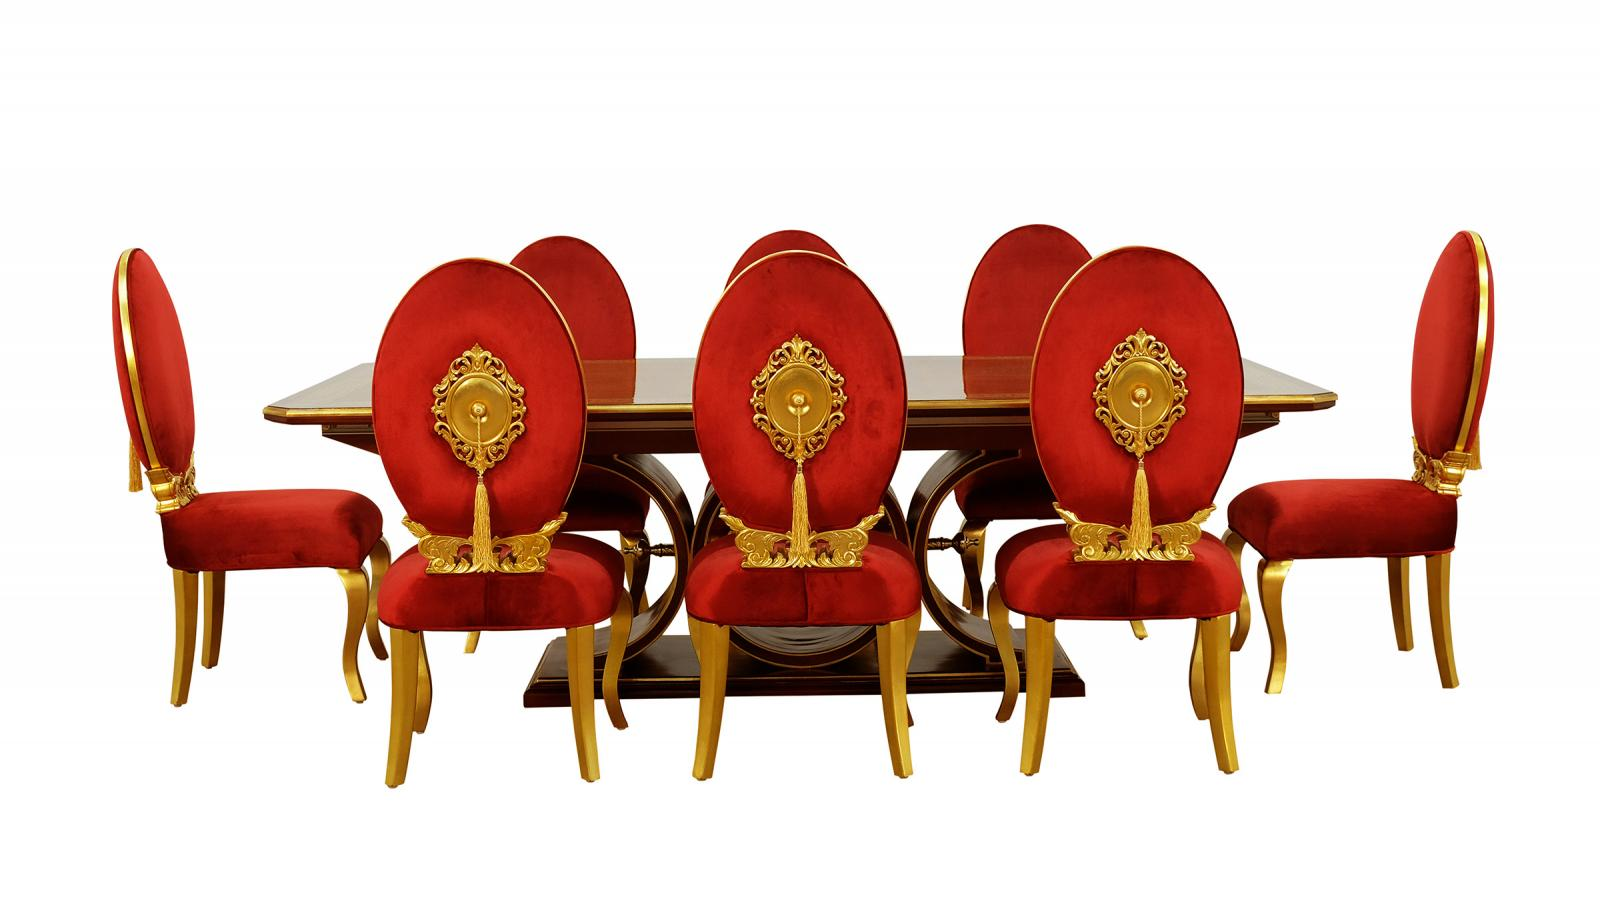 Contemporary, Modern Gold, Red, Ebony Velvet and Wood, Solid Hardwood Dining Table Set 9 pcs ROSELLA by European Furniture